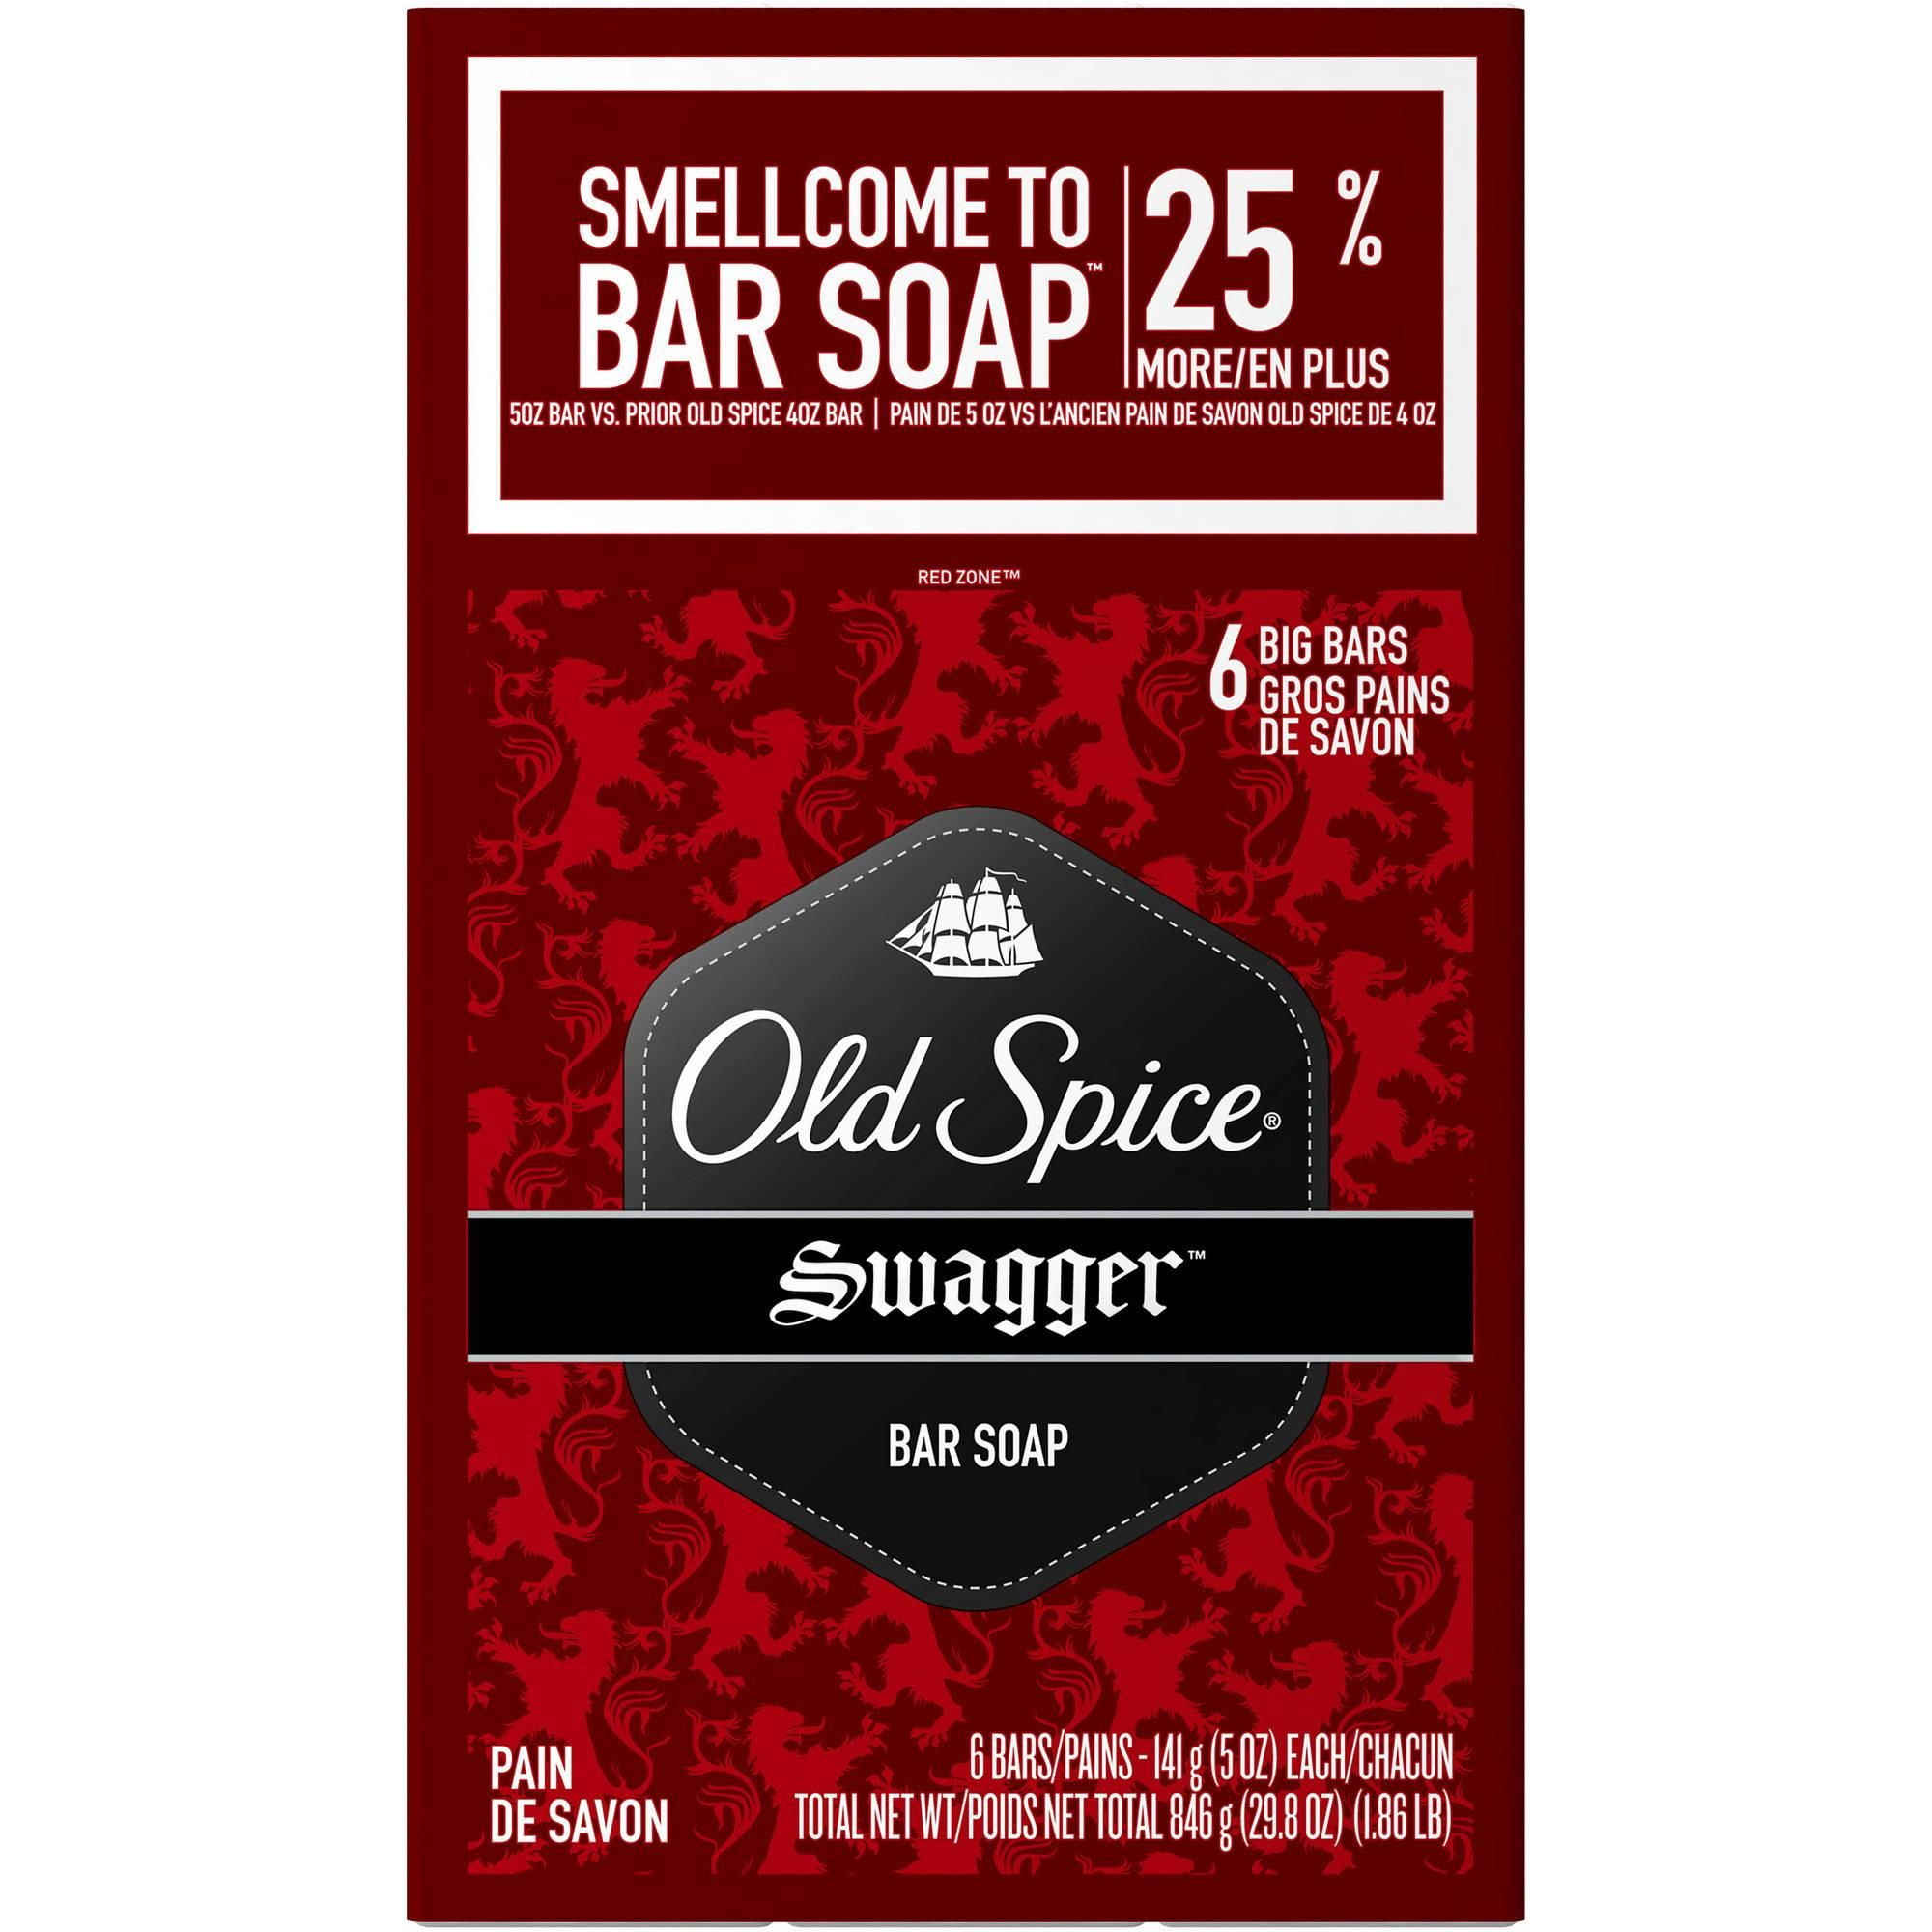 Old Spice Bar Soap